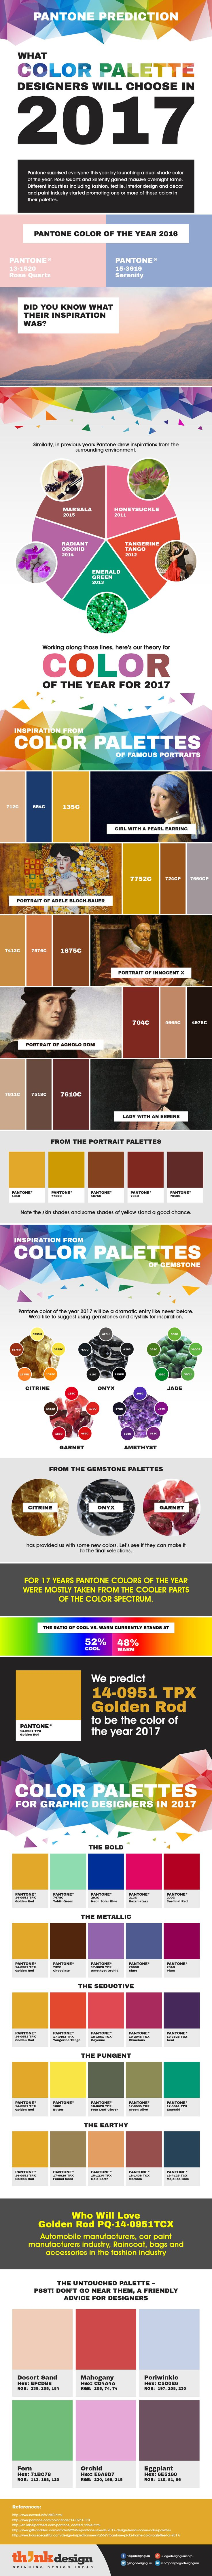 Infographic: PANTONE Prediction Of Color Palettes For Designers In 2017 - DesignTAXI.com